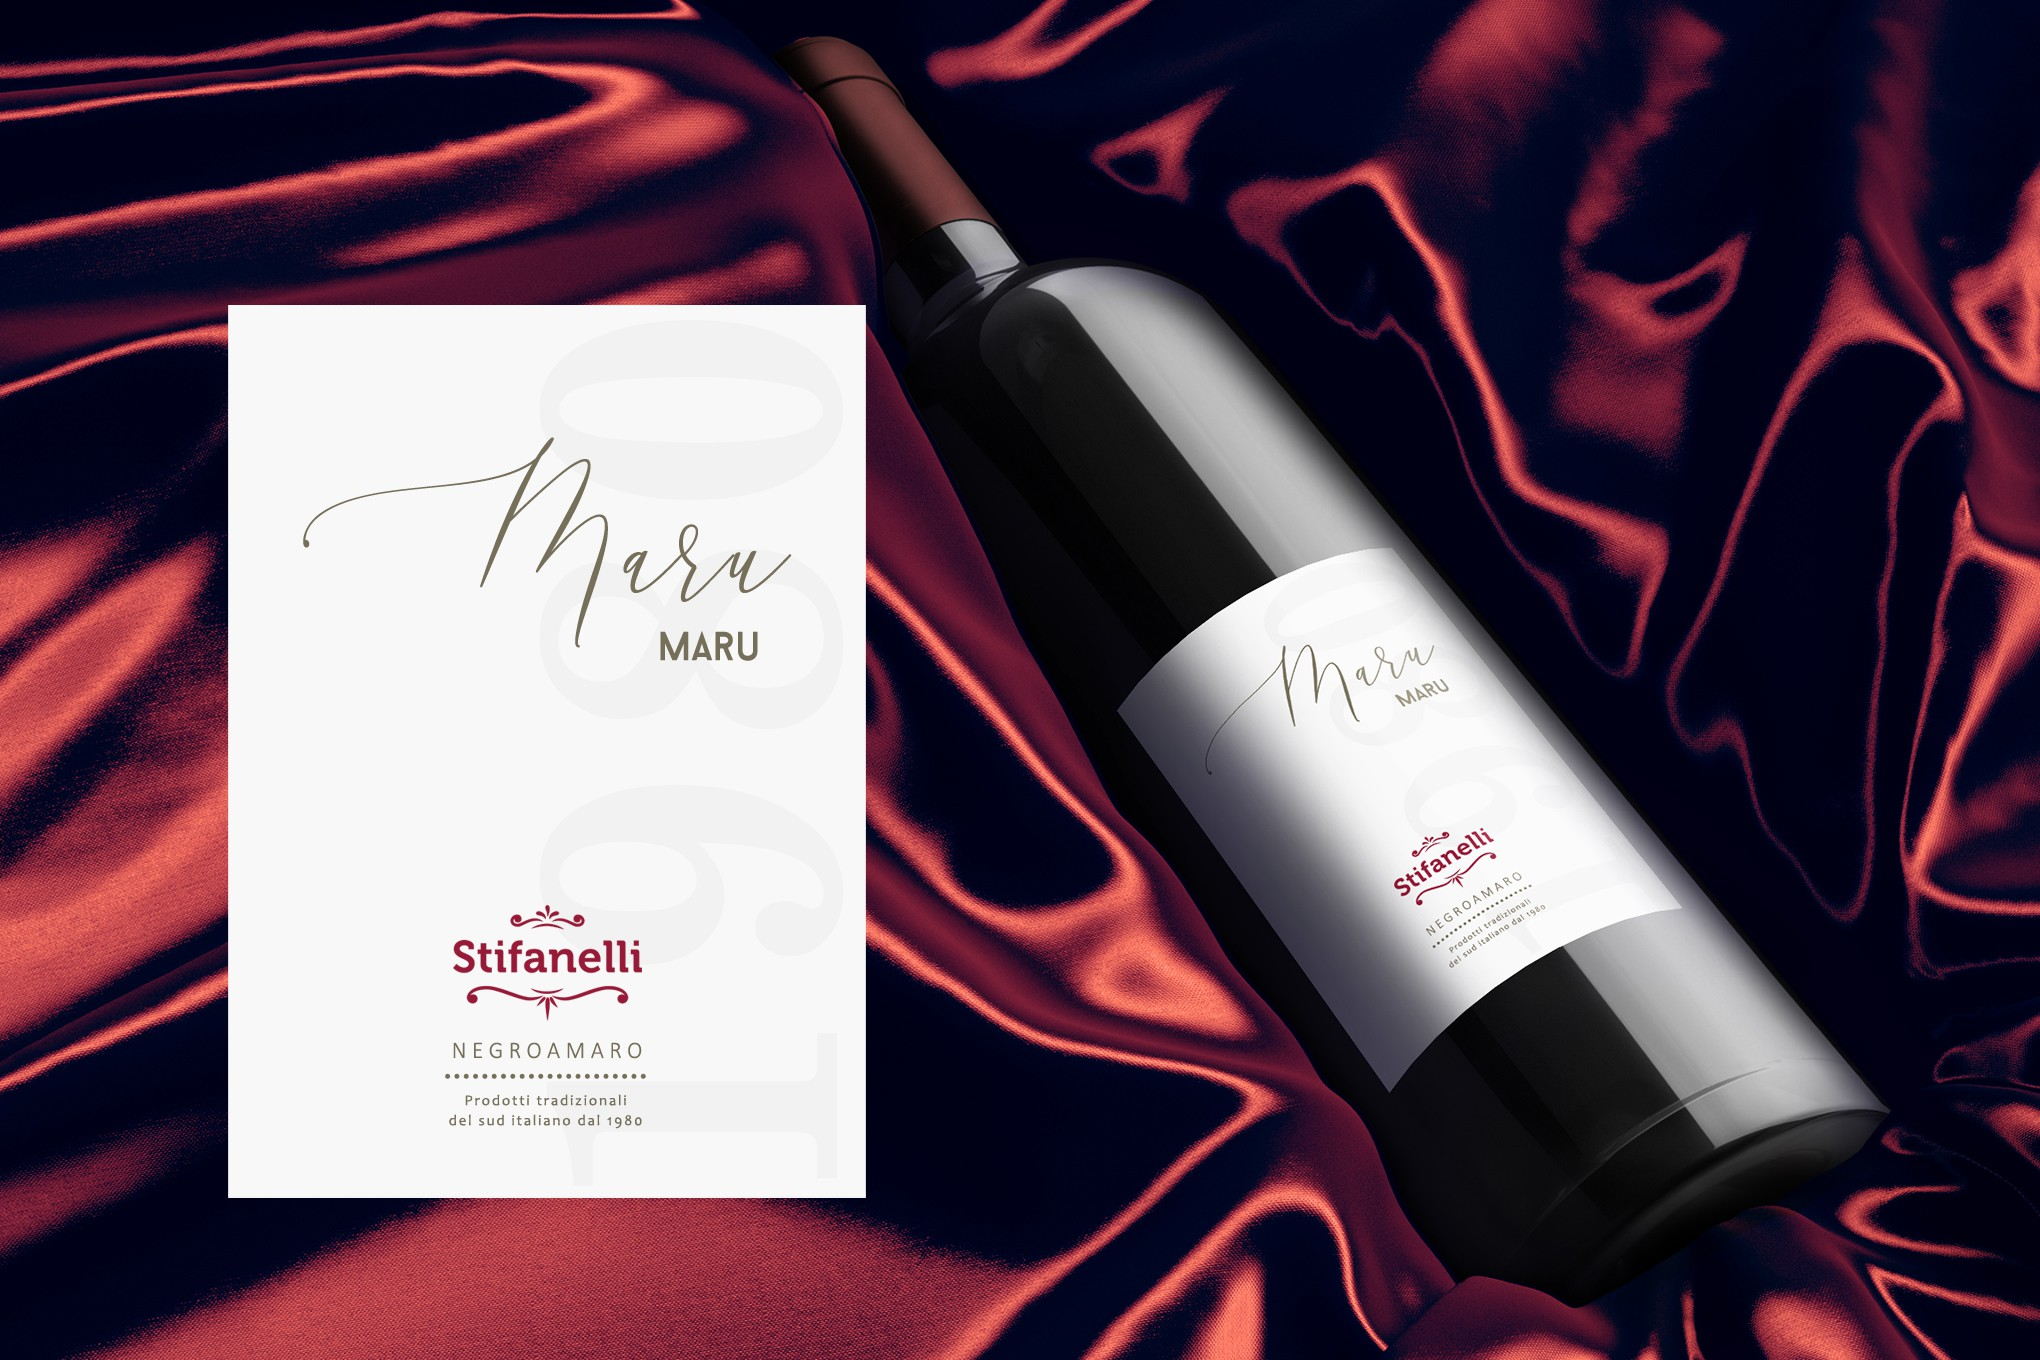 MaruMaru: Create an Apulian Wine Label for a Trusted Local Brand